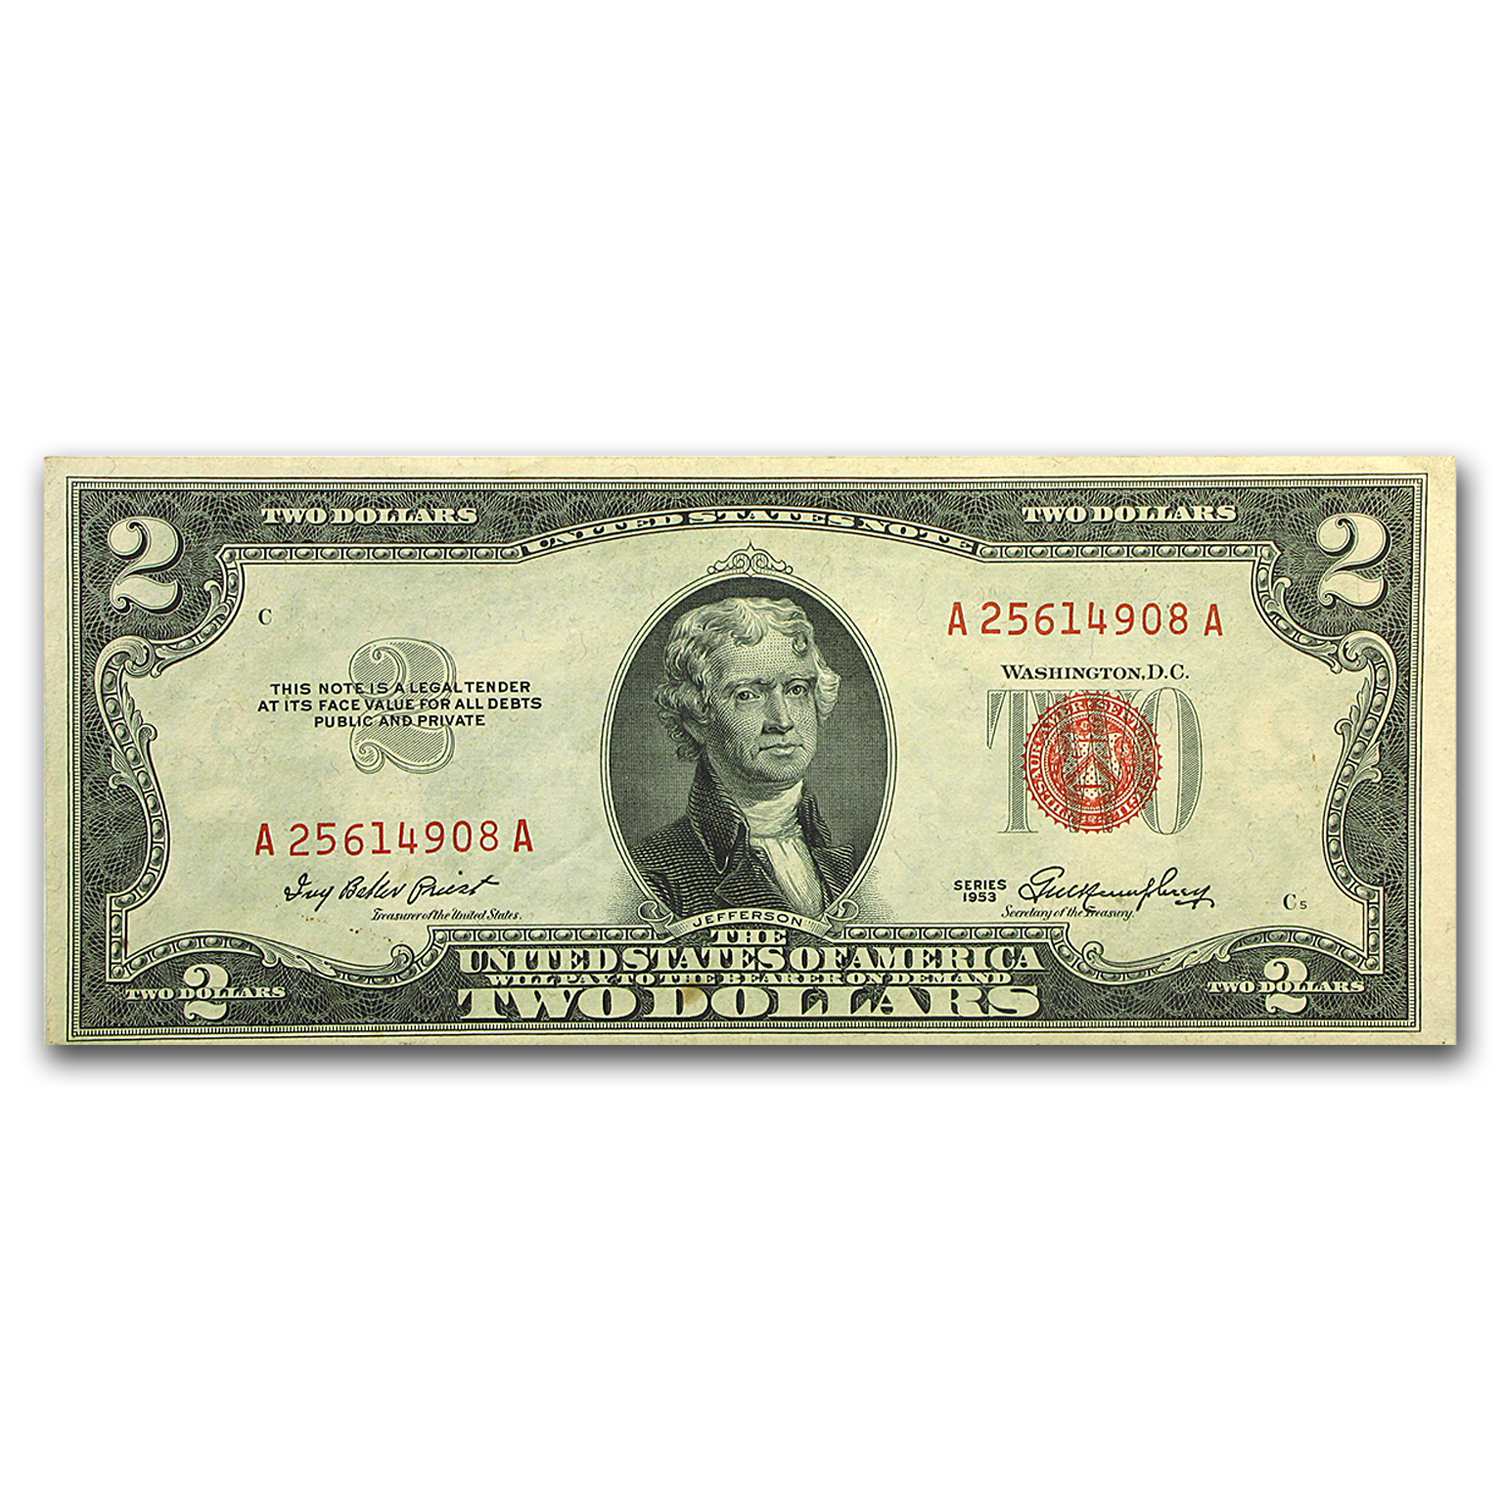 1953-1953-C $2.00 U.S. Notes Red Seal VF-XF